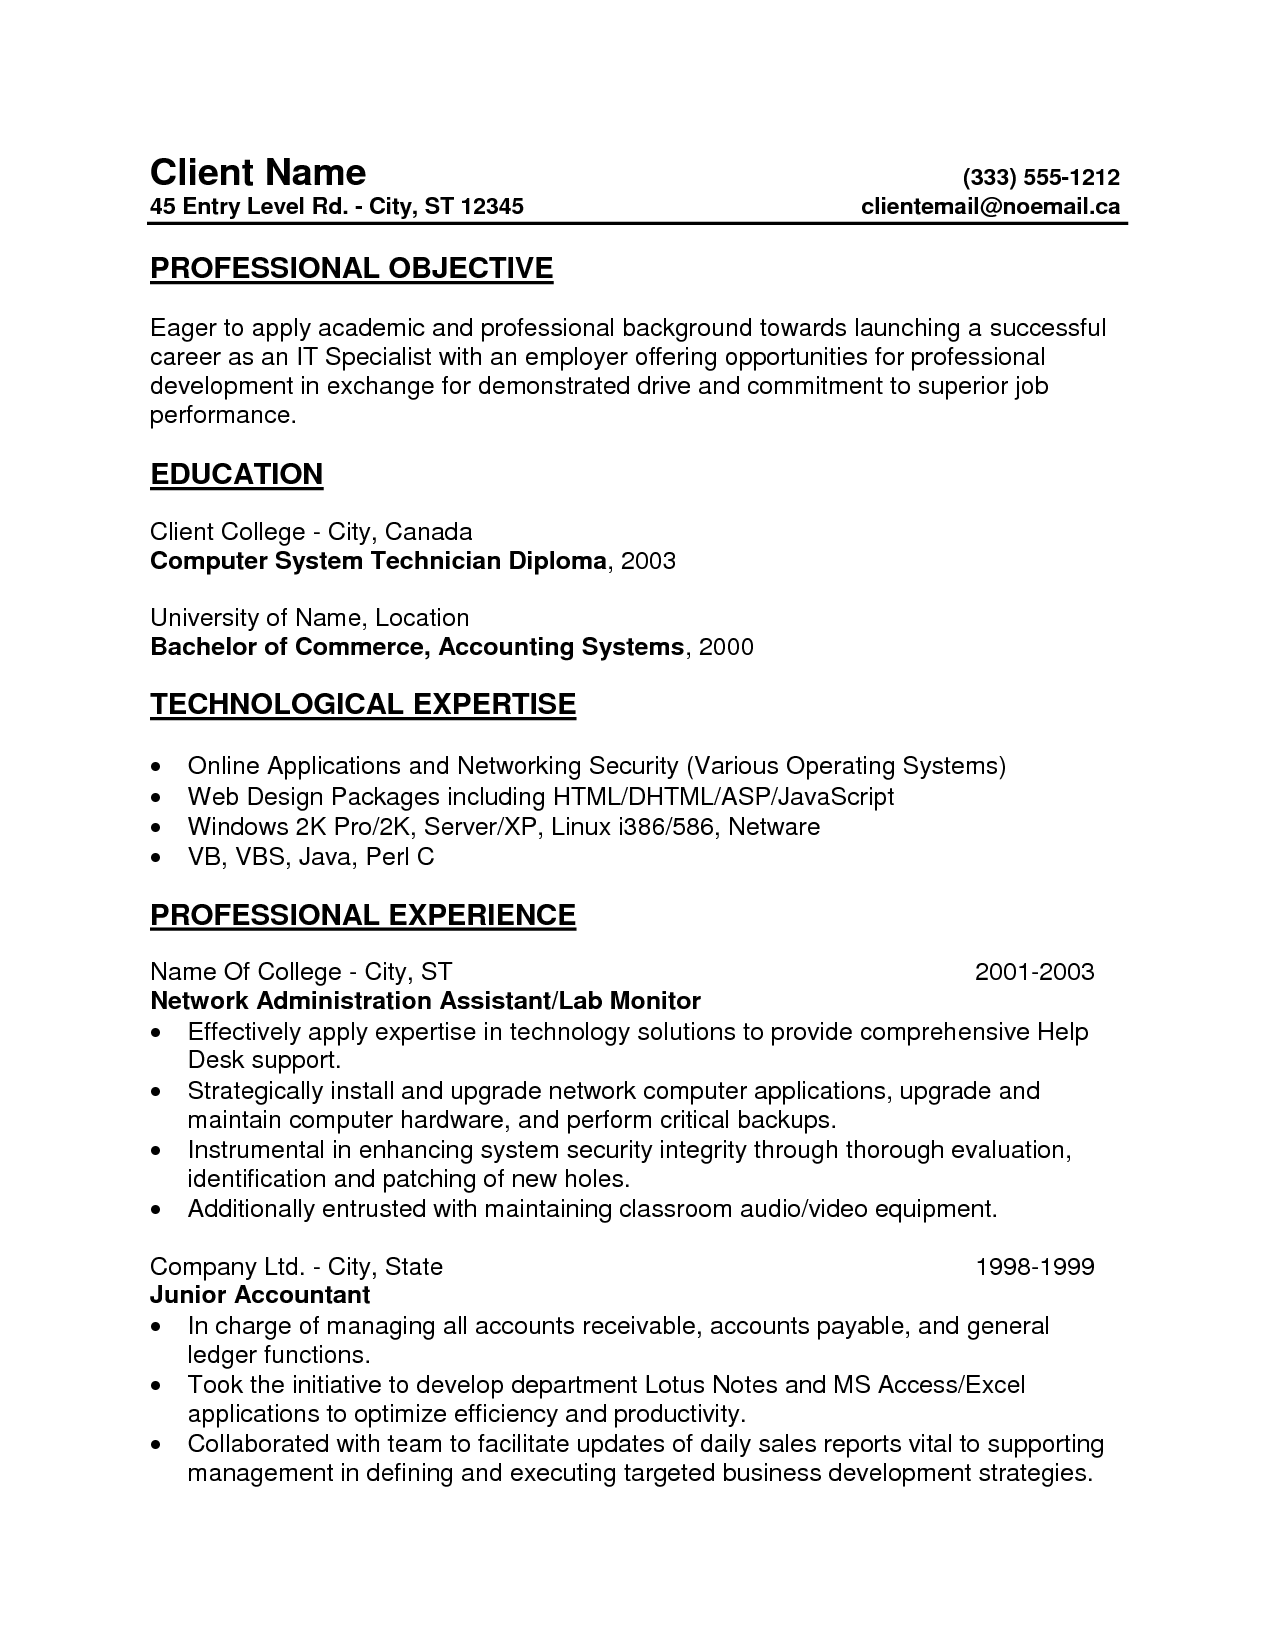 entry level pharmaceutical s jobs com entry level resume professional objective and professional experience